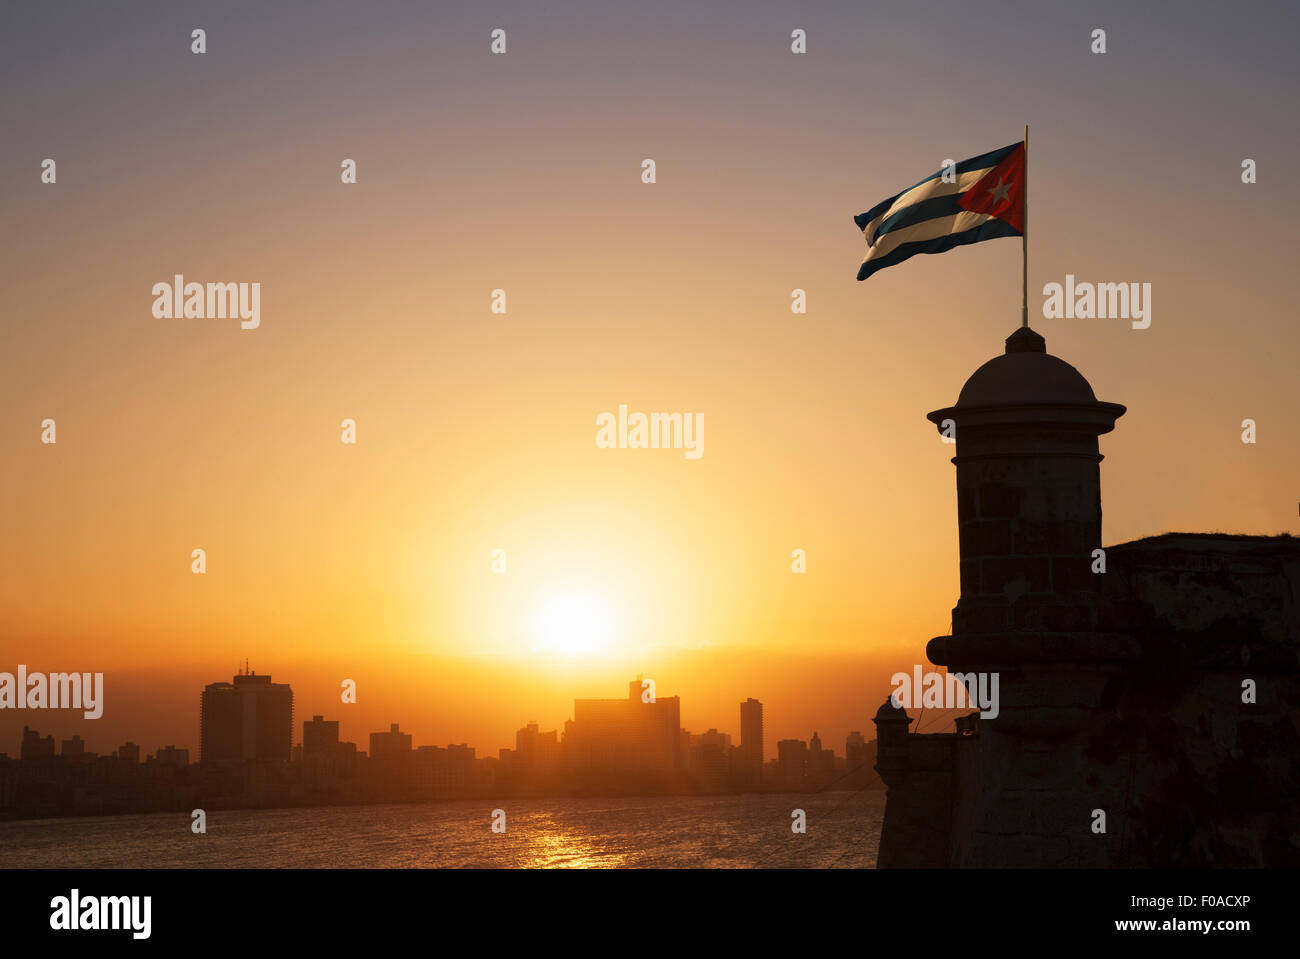 Cuban flag over the Fortress of El Morro at sunset, Havana, Cuba - Stock Image